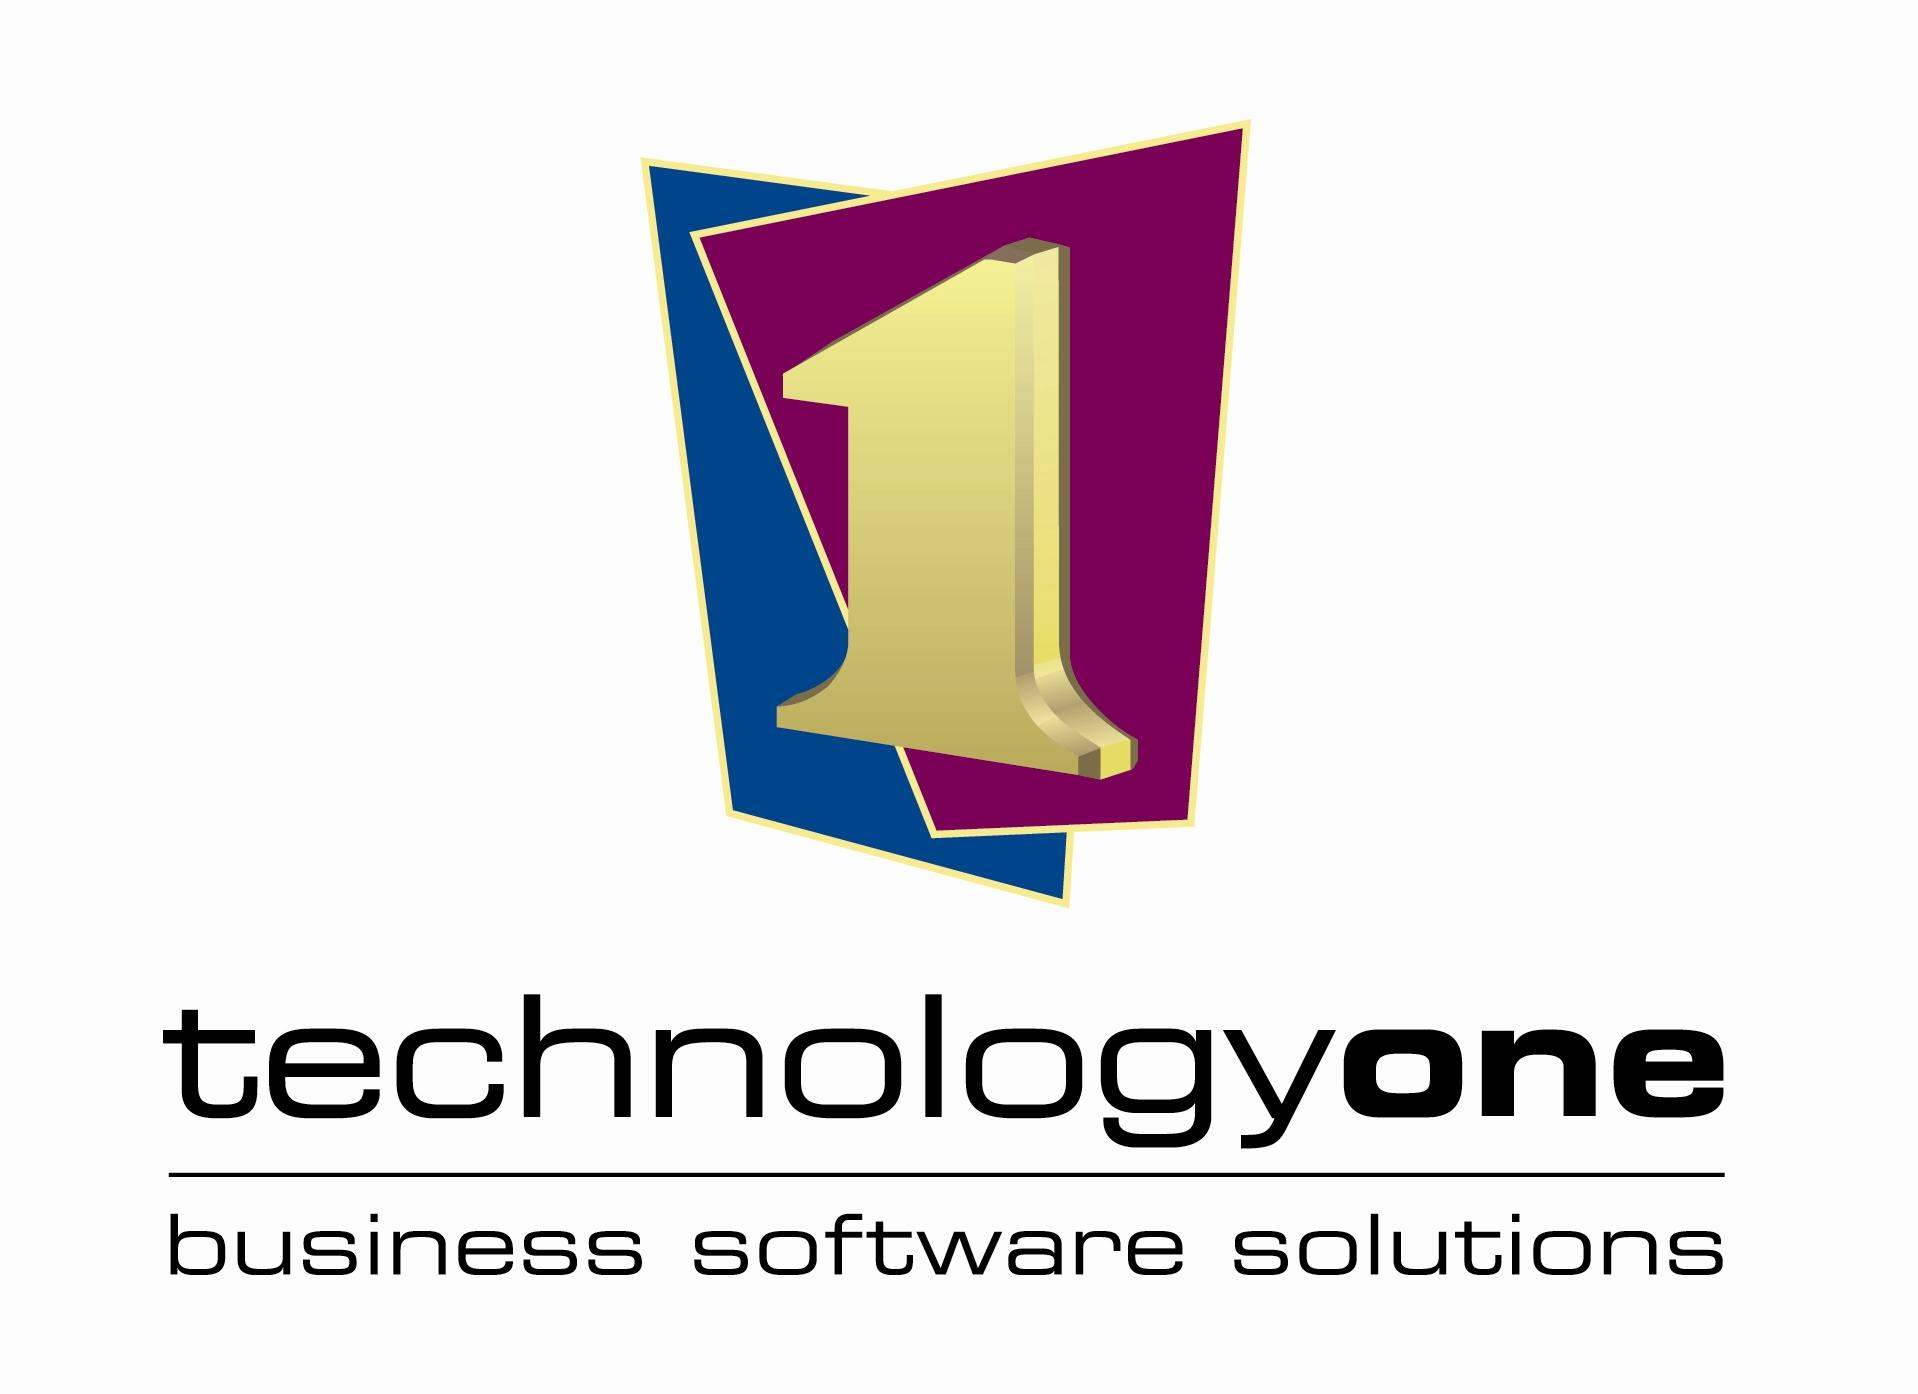 Technology One: My Top Pick In Asia Pacific